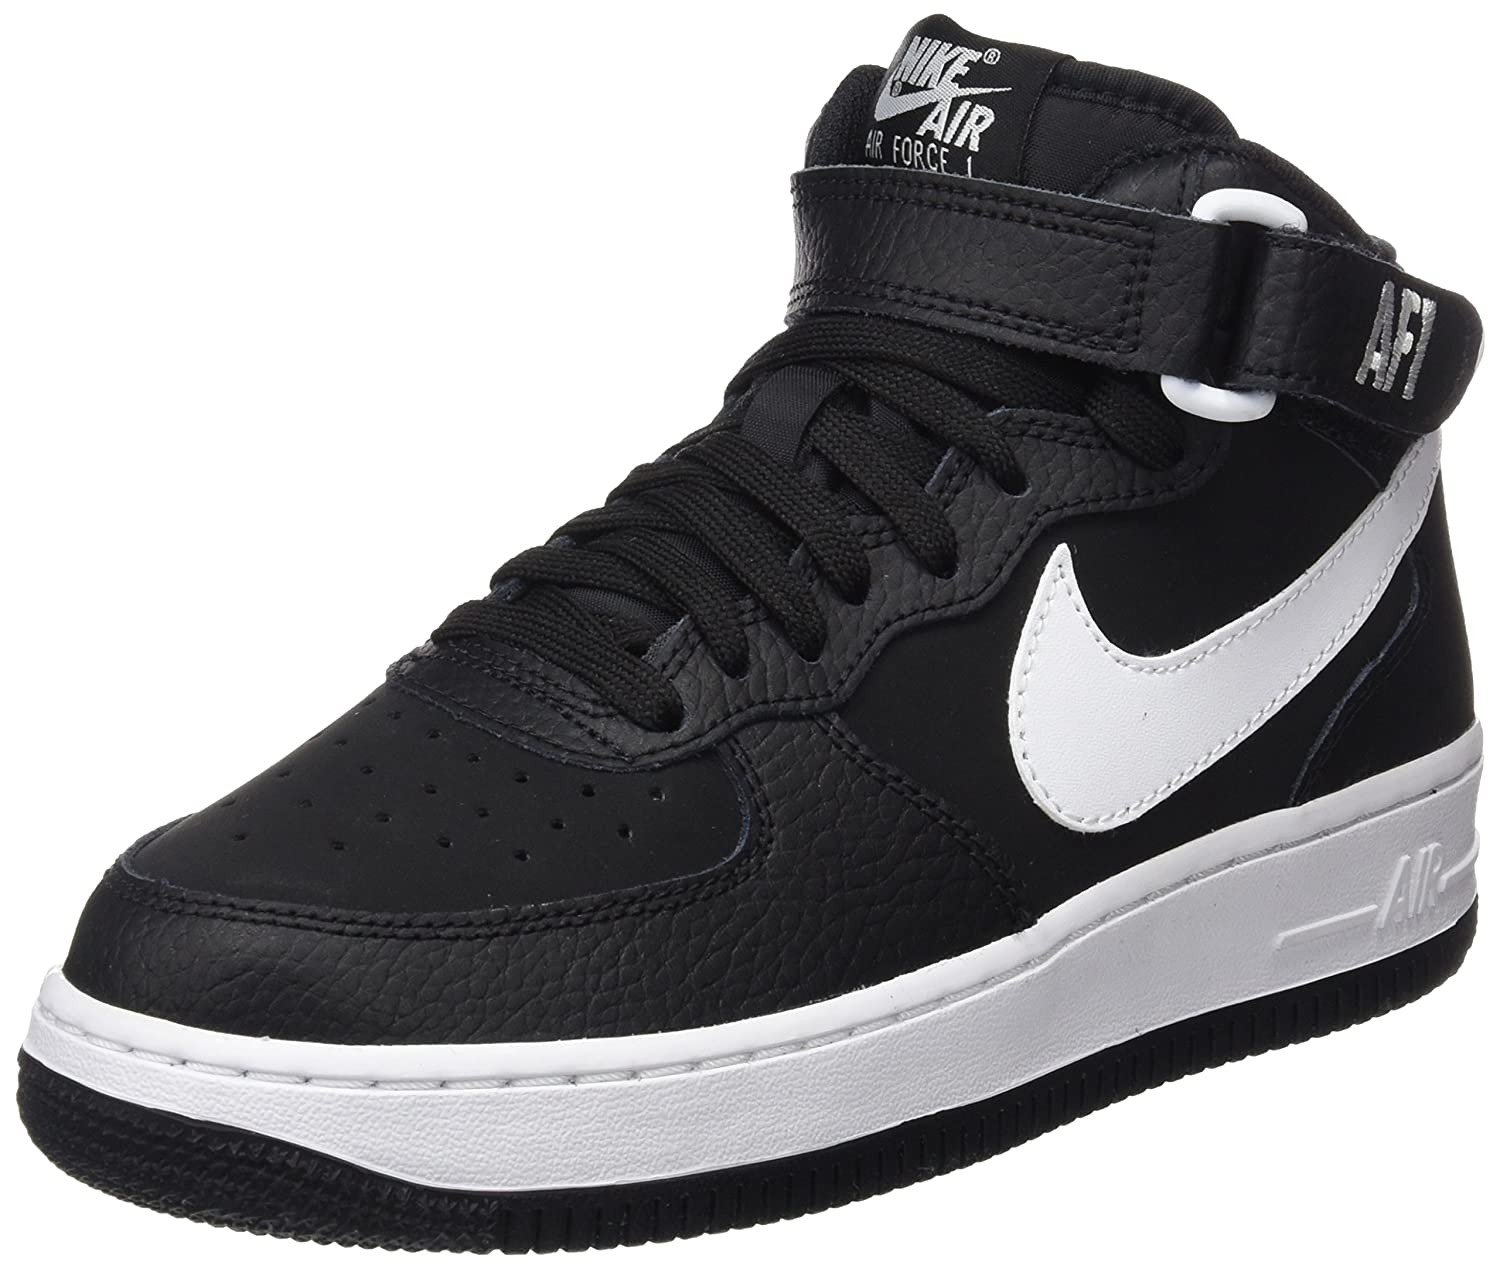 [ナイキ] Nike - Air Force 1 Mid GS [並行輸入品] - 314195038 - Size: 23.5